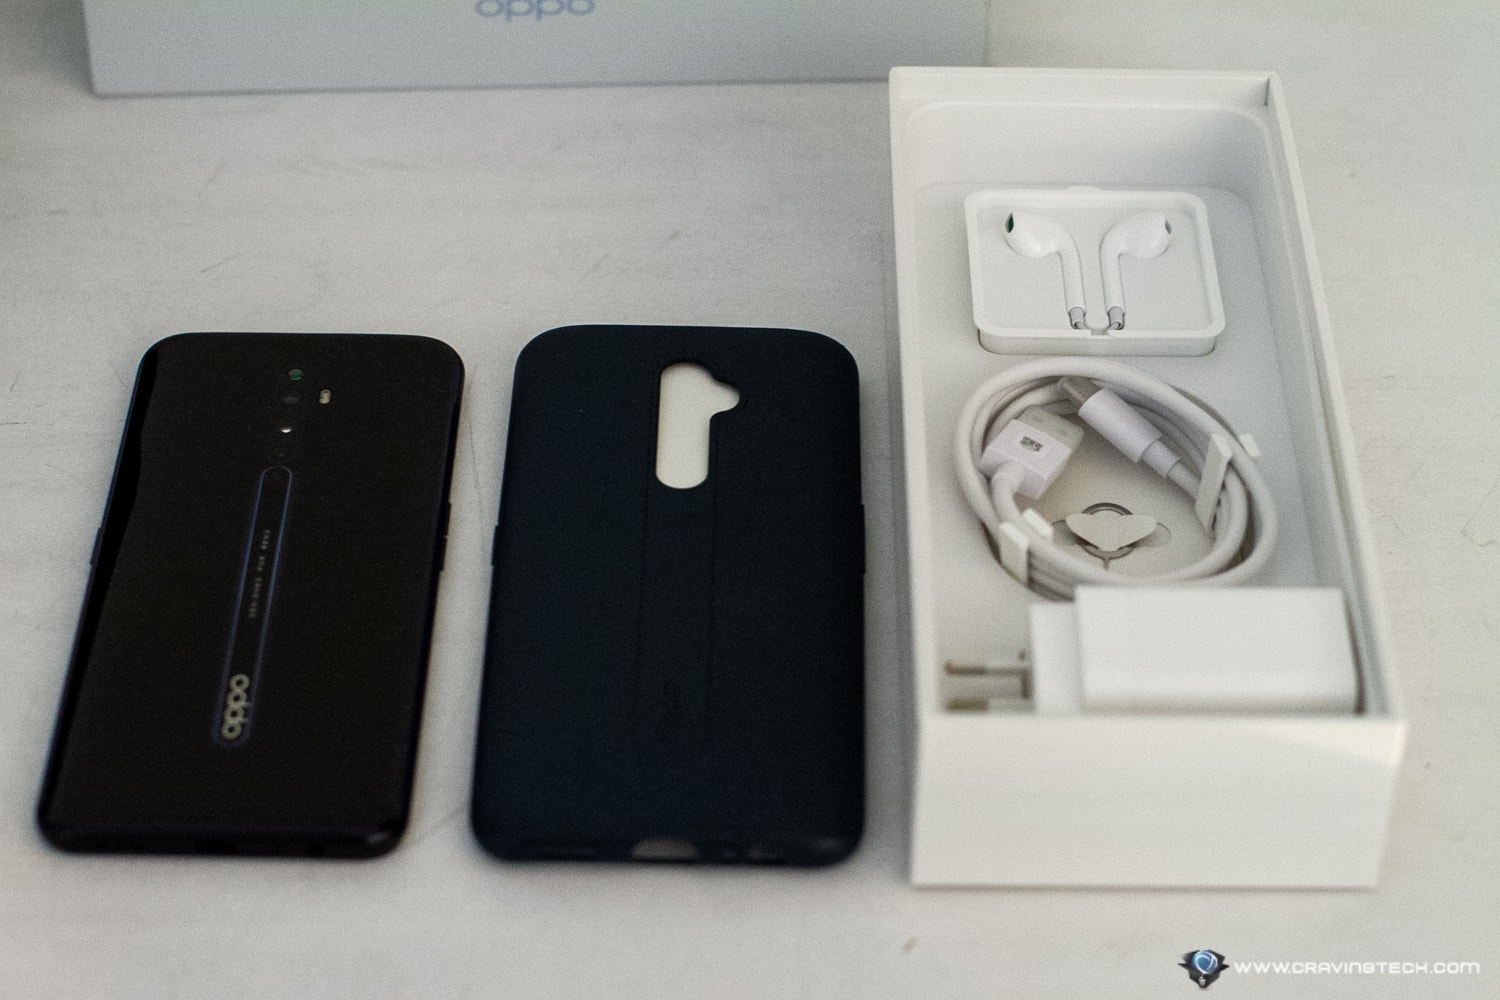 OPPO Reno2 Z  packaging and unboxing